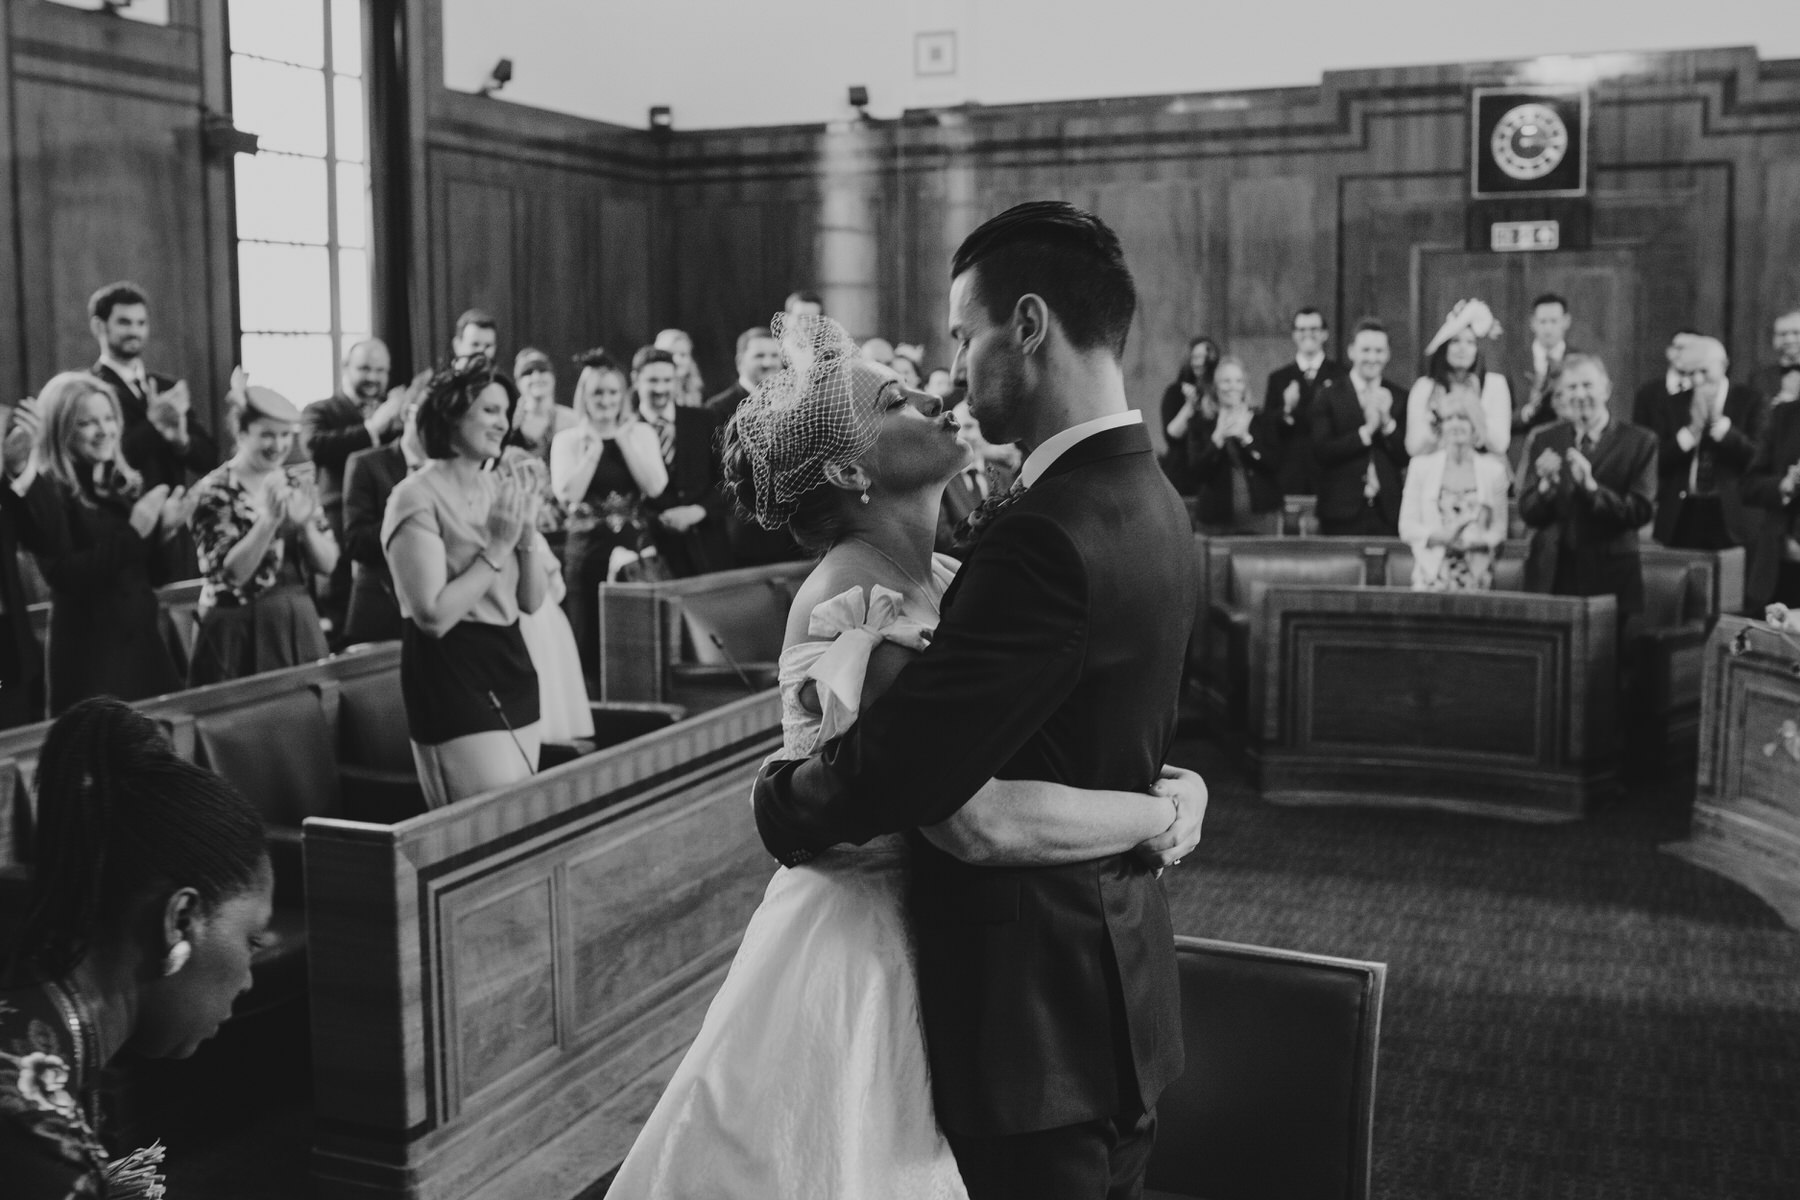 MS-Londesborough-Pub-wedding-Hackney-alternative-photographer-118-bride-groom-kiss-BW.jpg